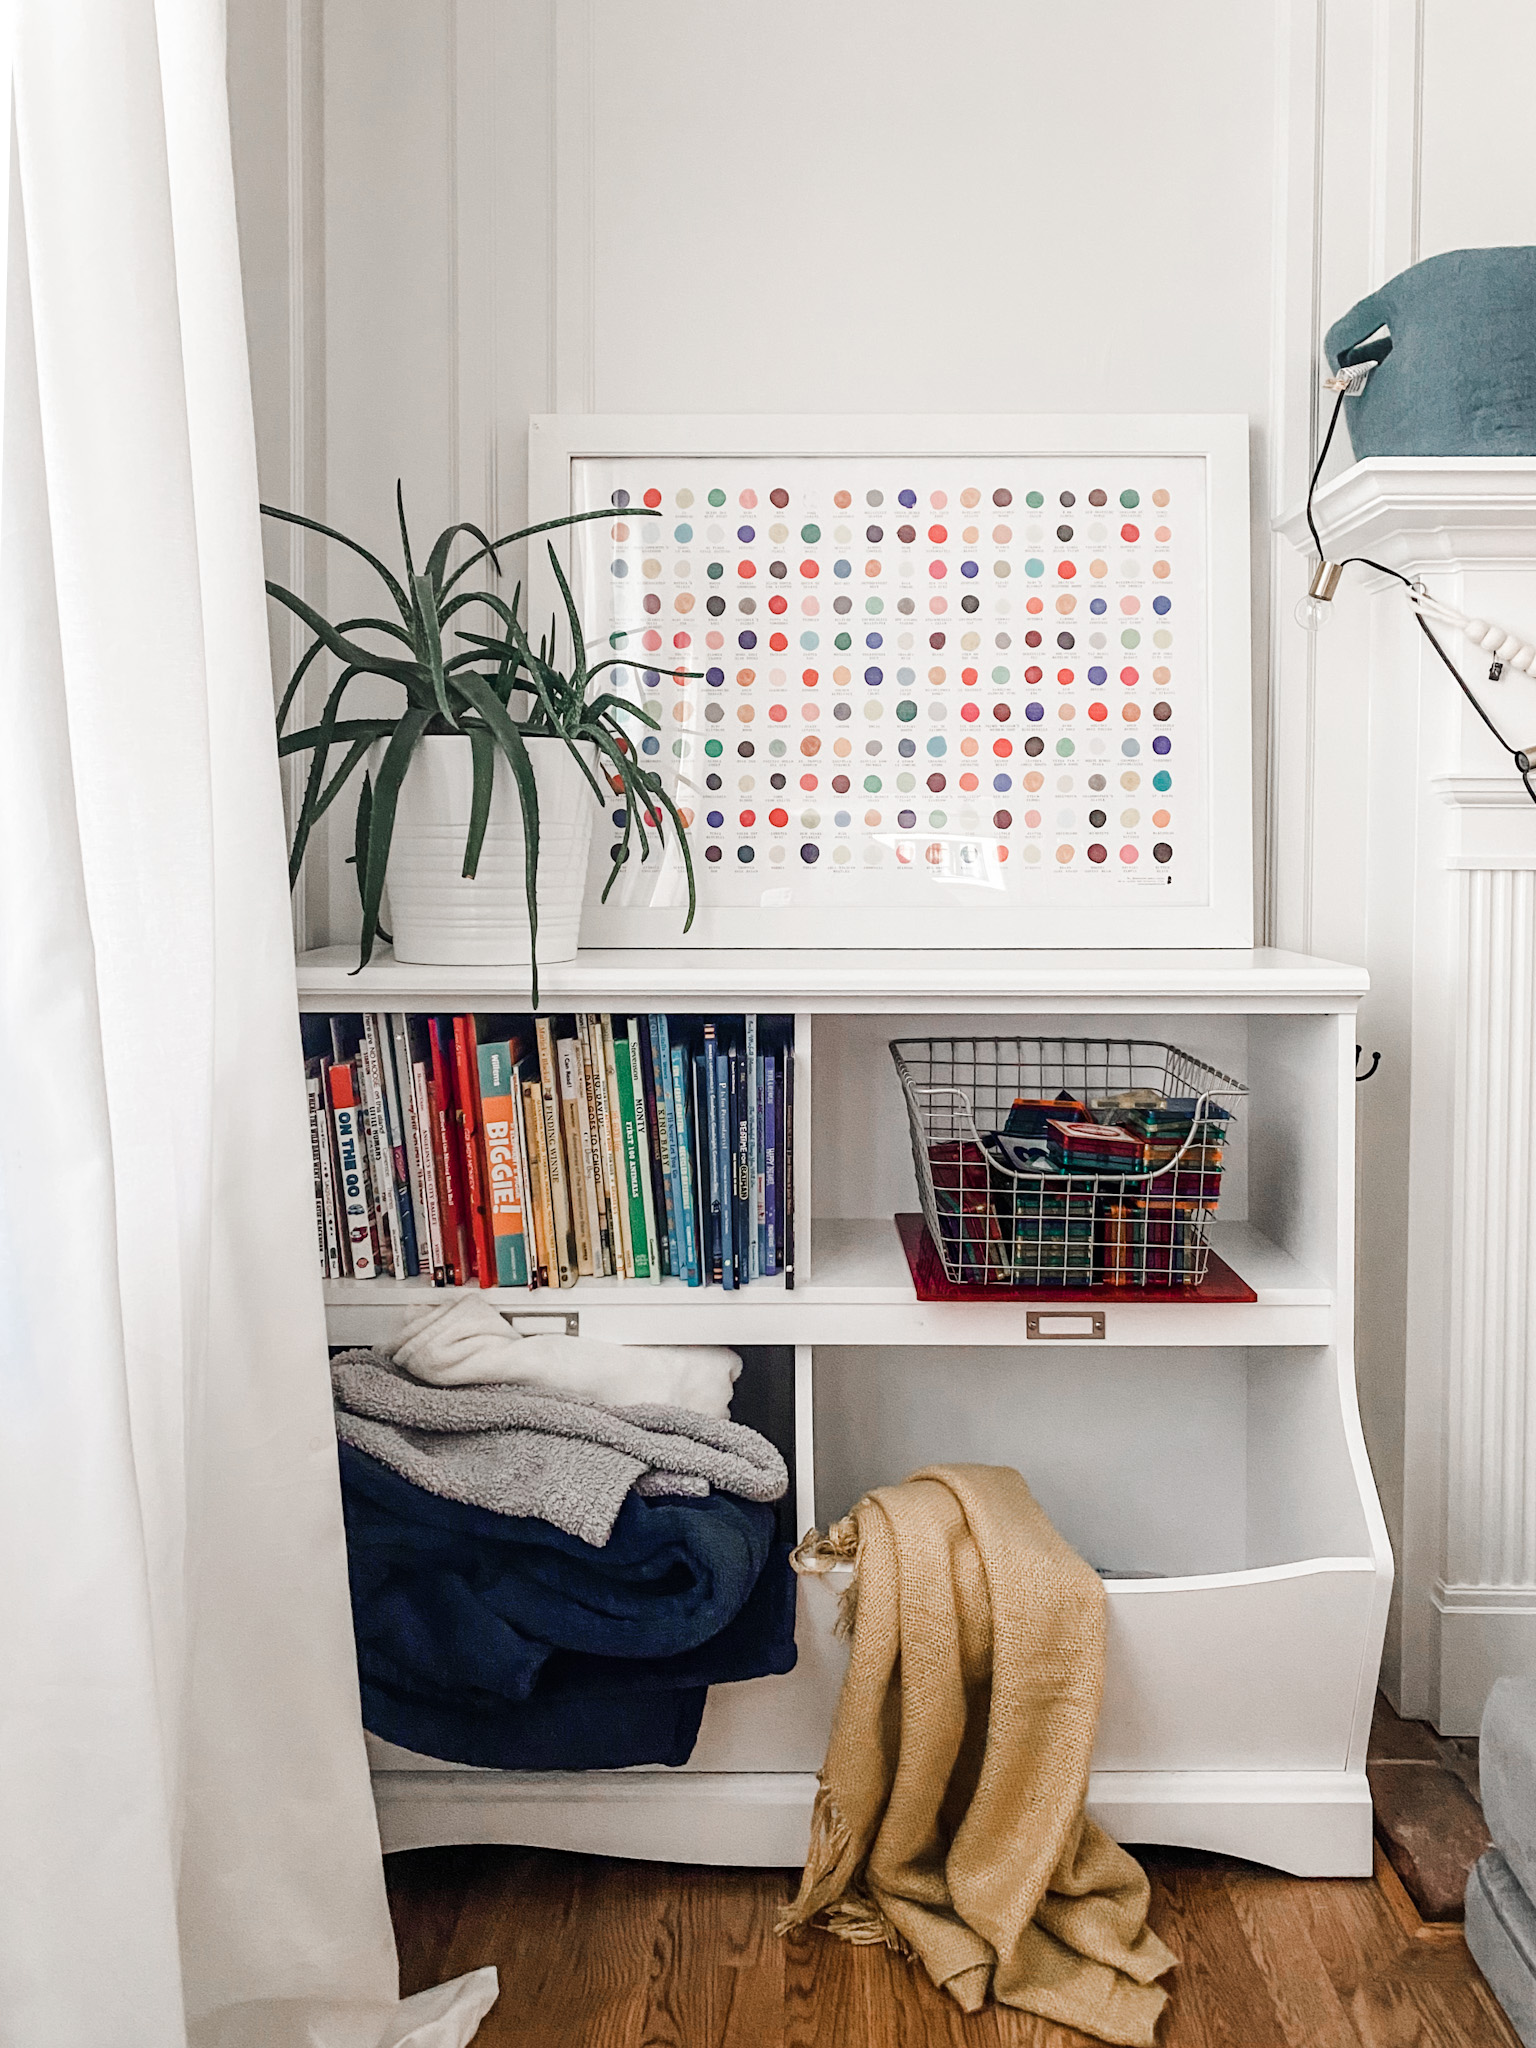 Furniture Finds: Affordable Kids Bunk Beds + Room Storage